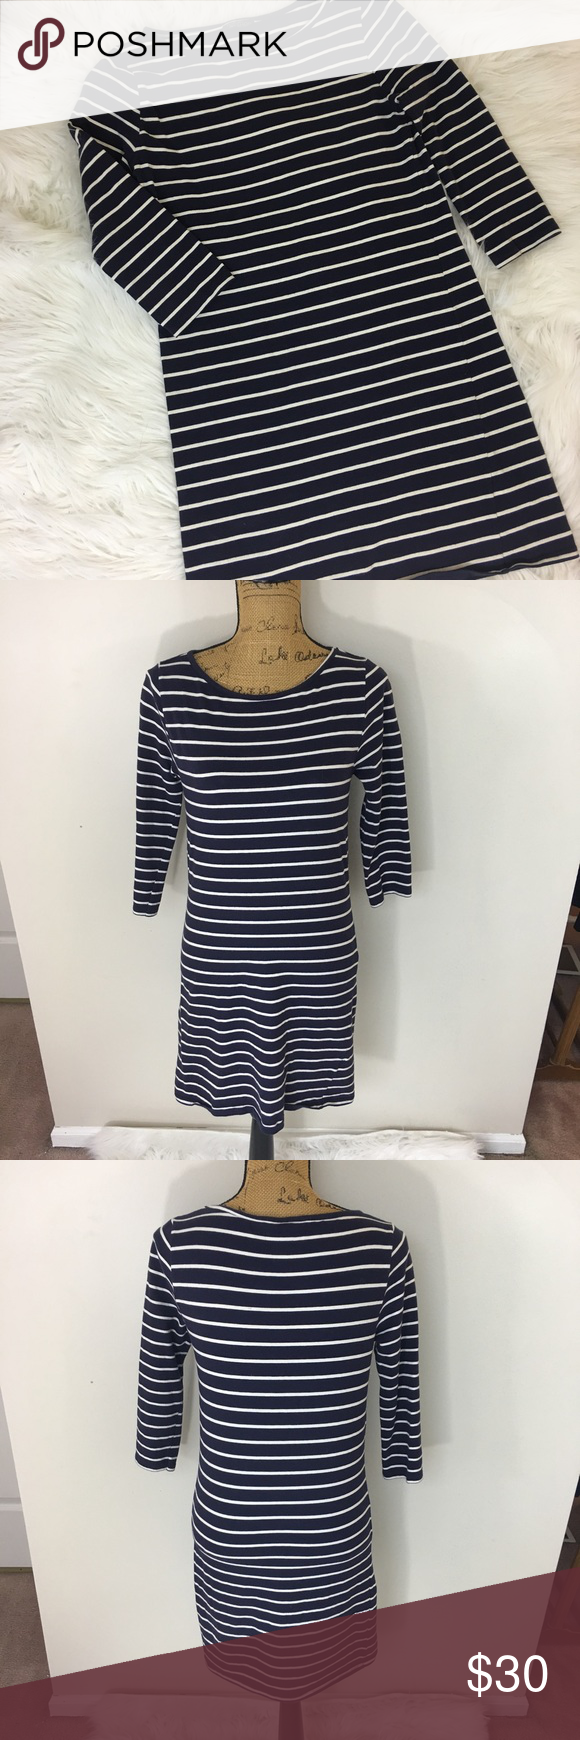 Topshop maternity striped dress topshop navy blue and white topshop maternity striped dress topshop navy blue and white maternity dress size 8 ombrellifo Gallery